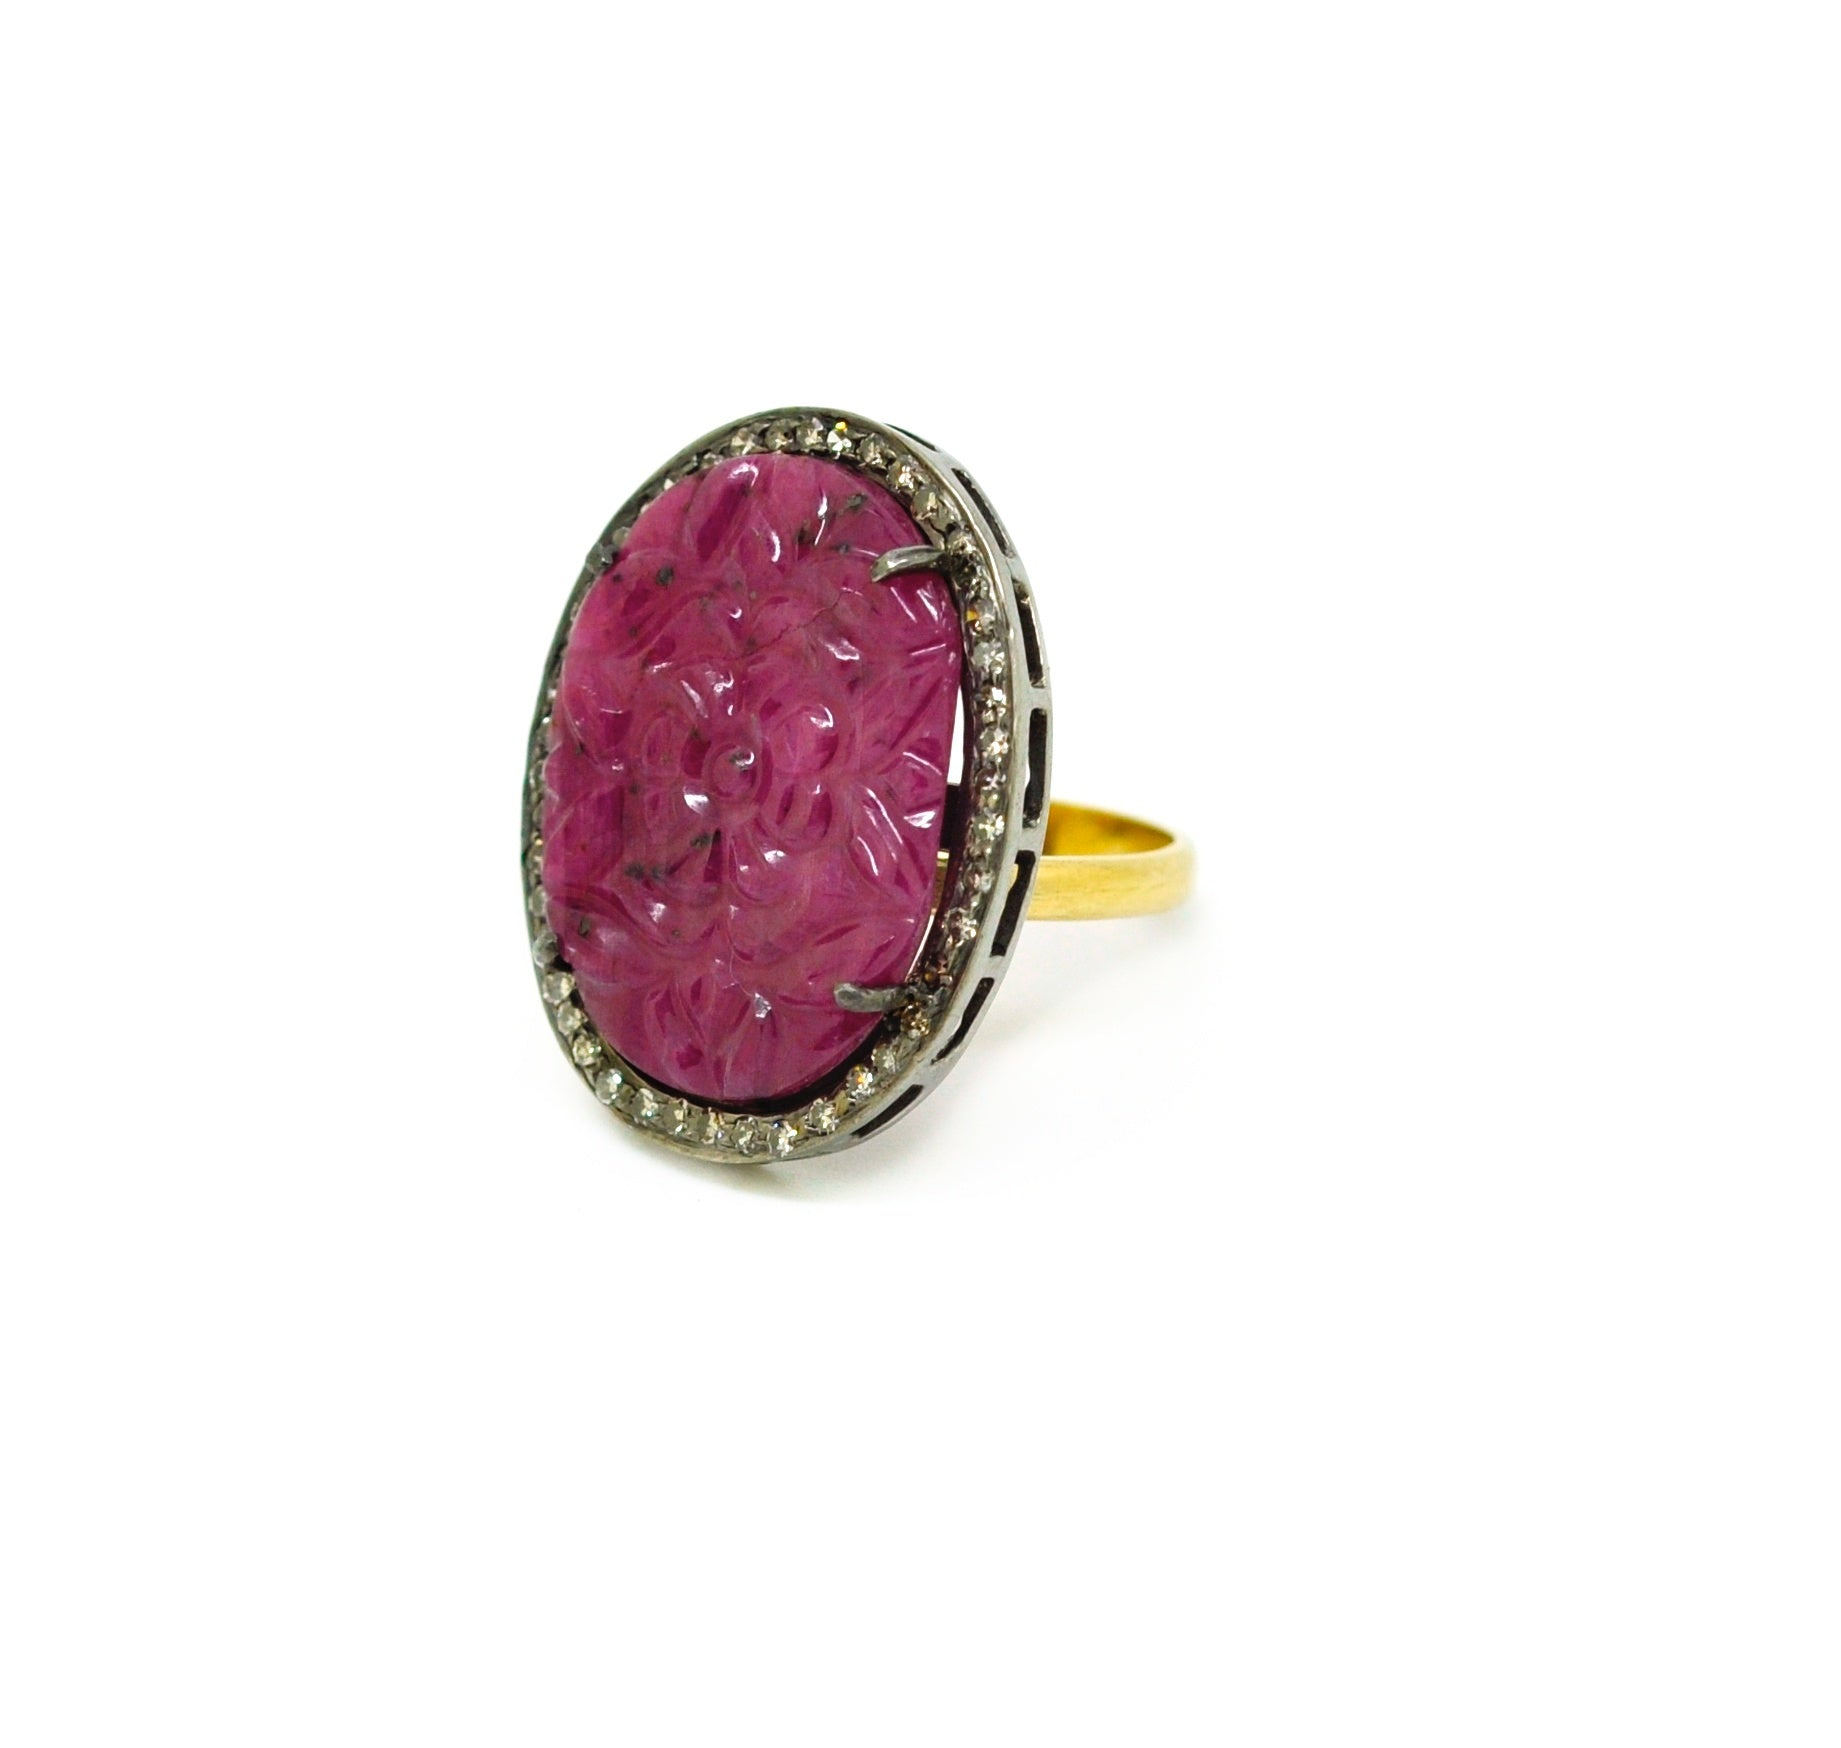 SOLD - NEW Carved Ruby ring